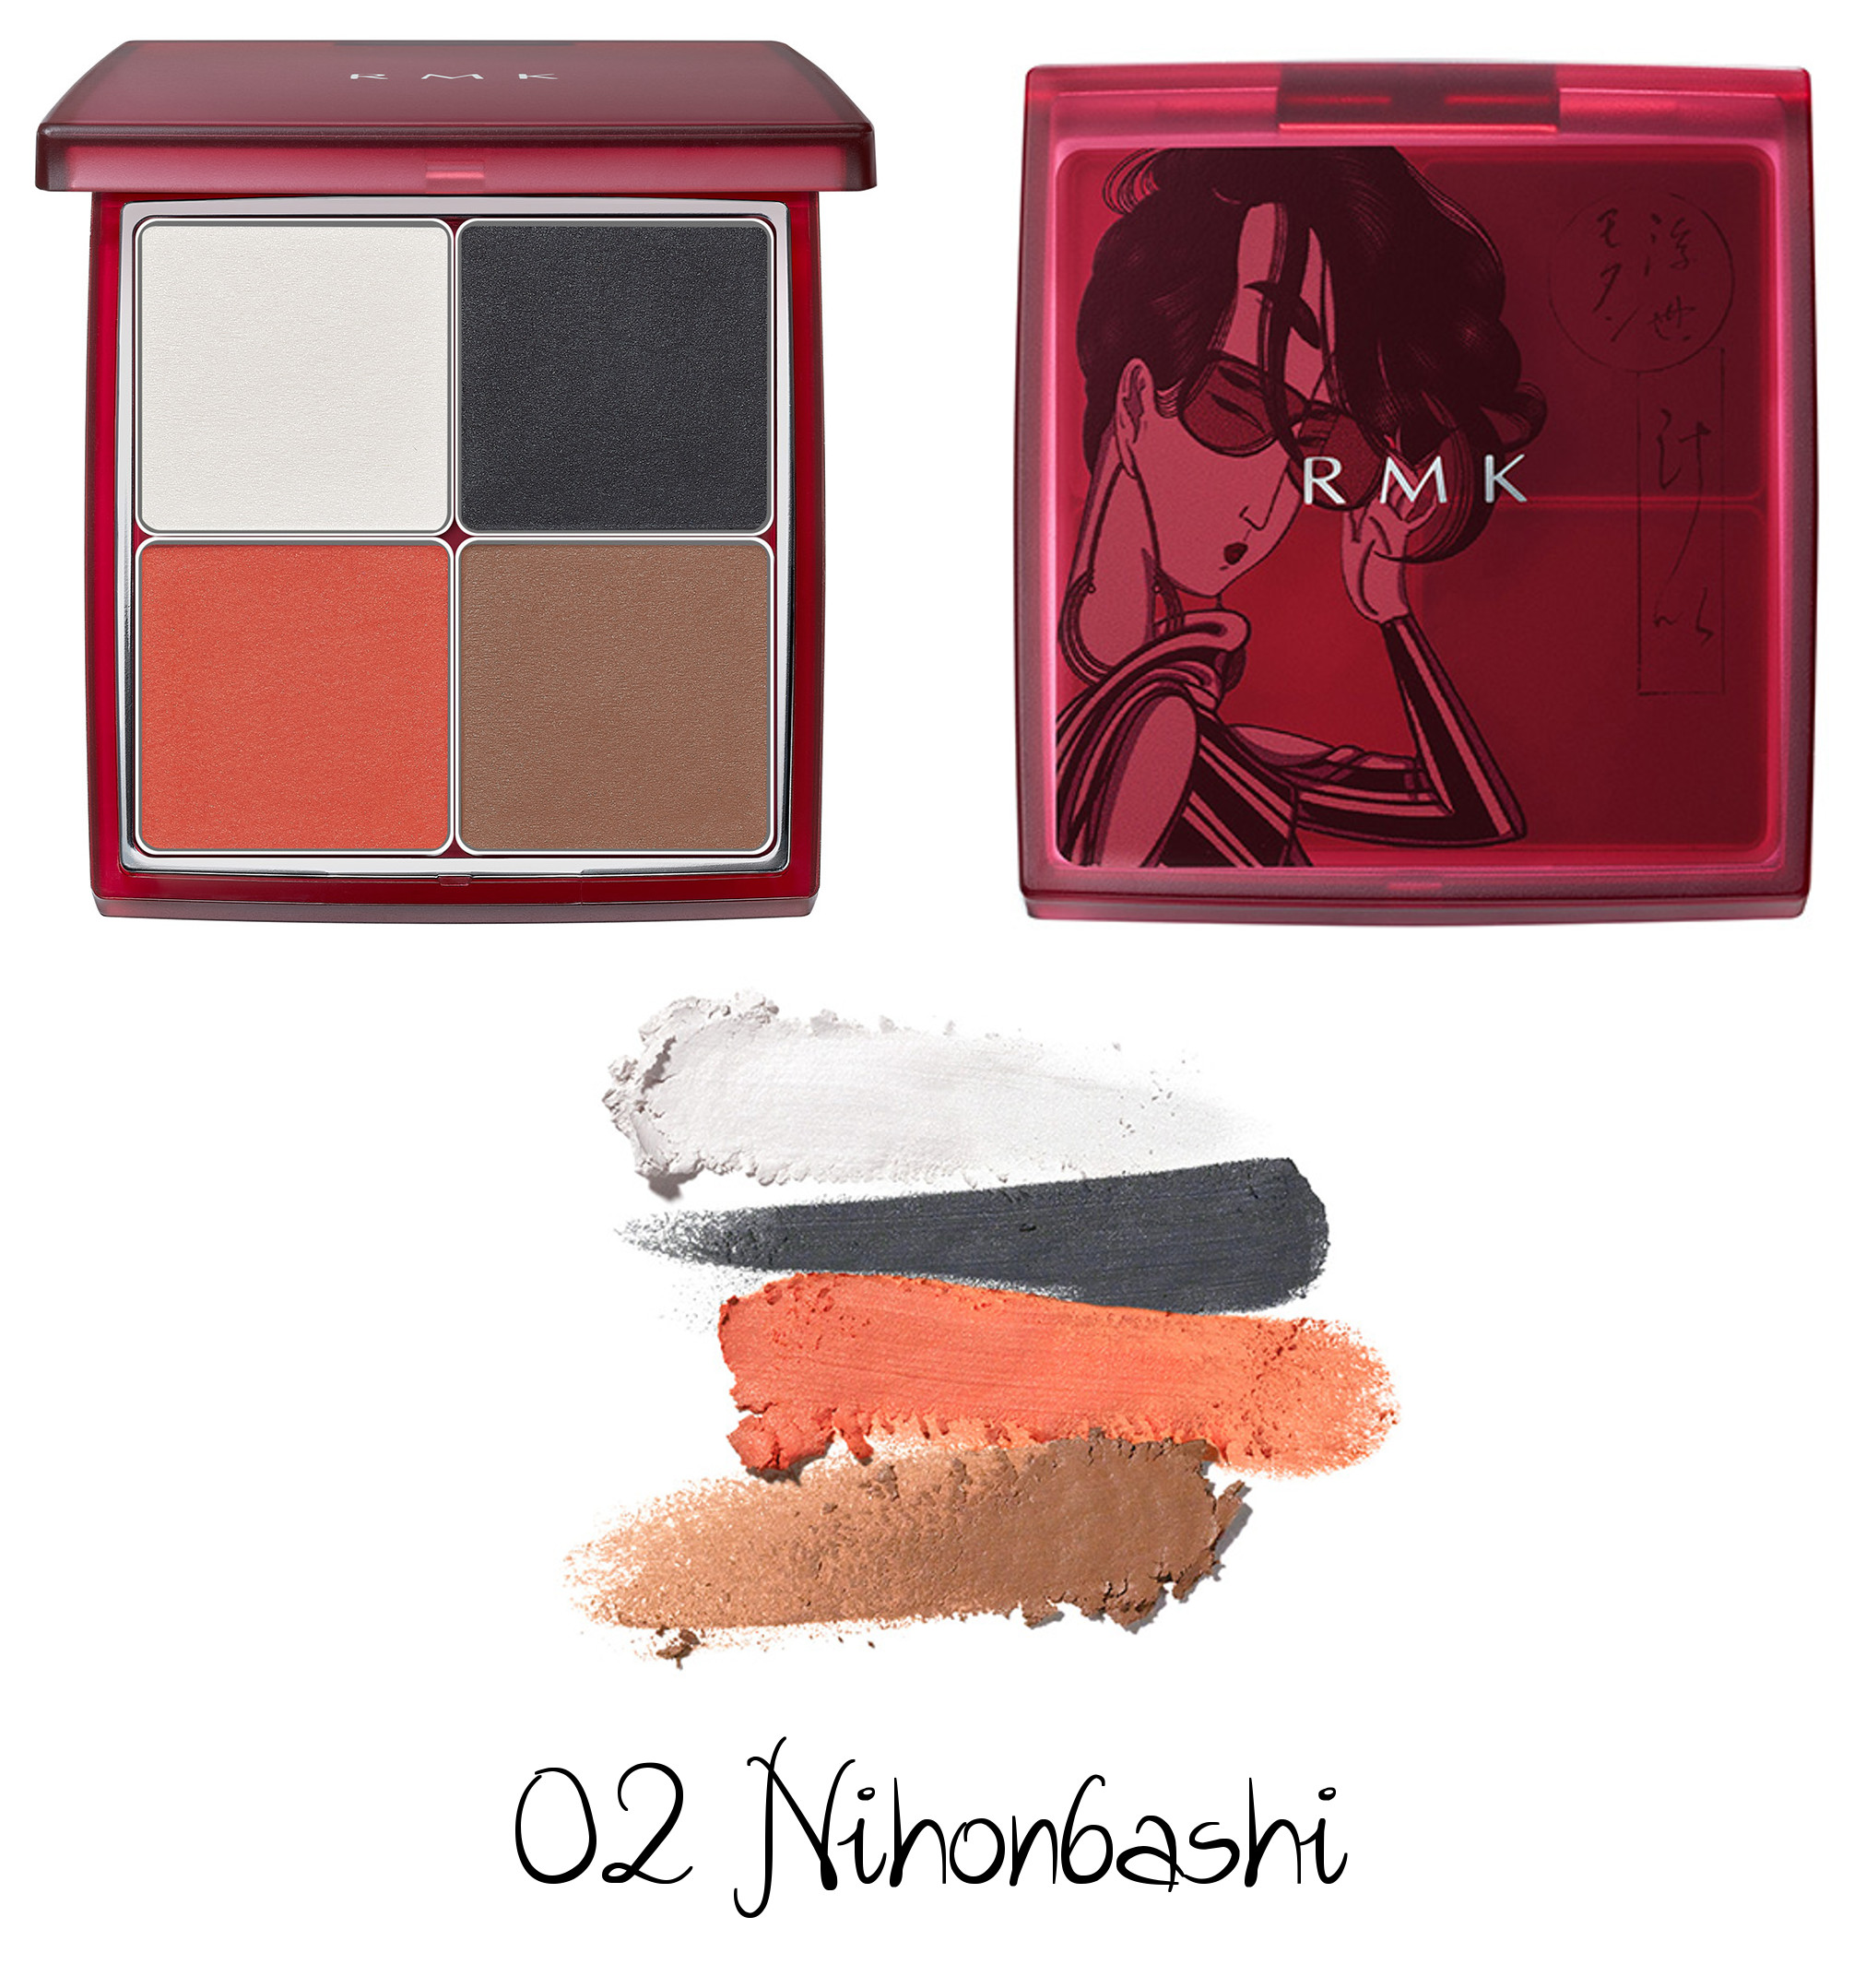 RMK Autumn Winter Collection 2020 Ukiyo Modern Eyeshadow Palette 02 Nihonbashi